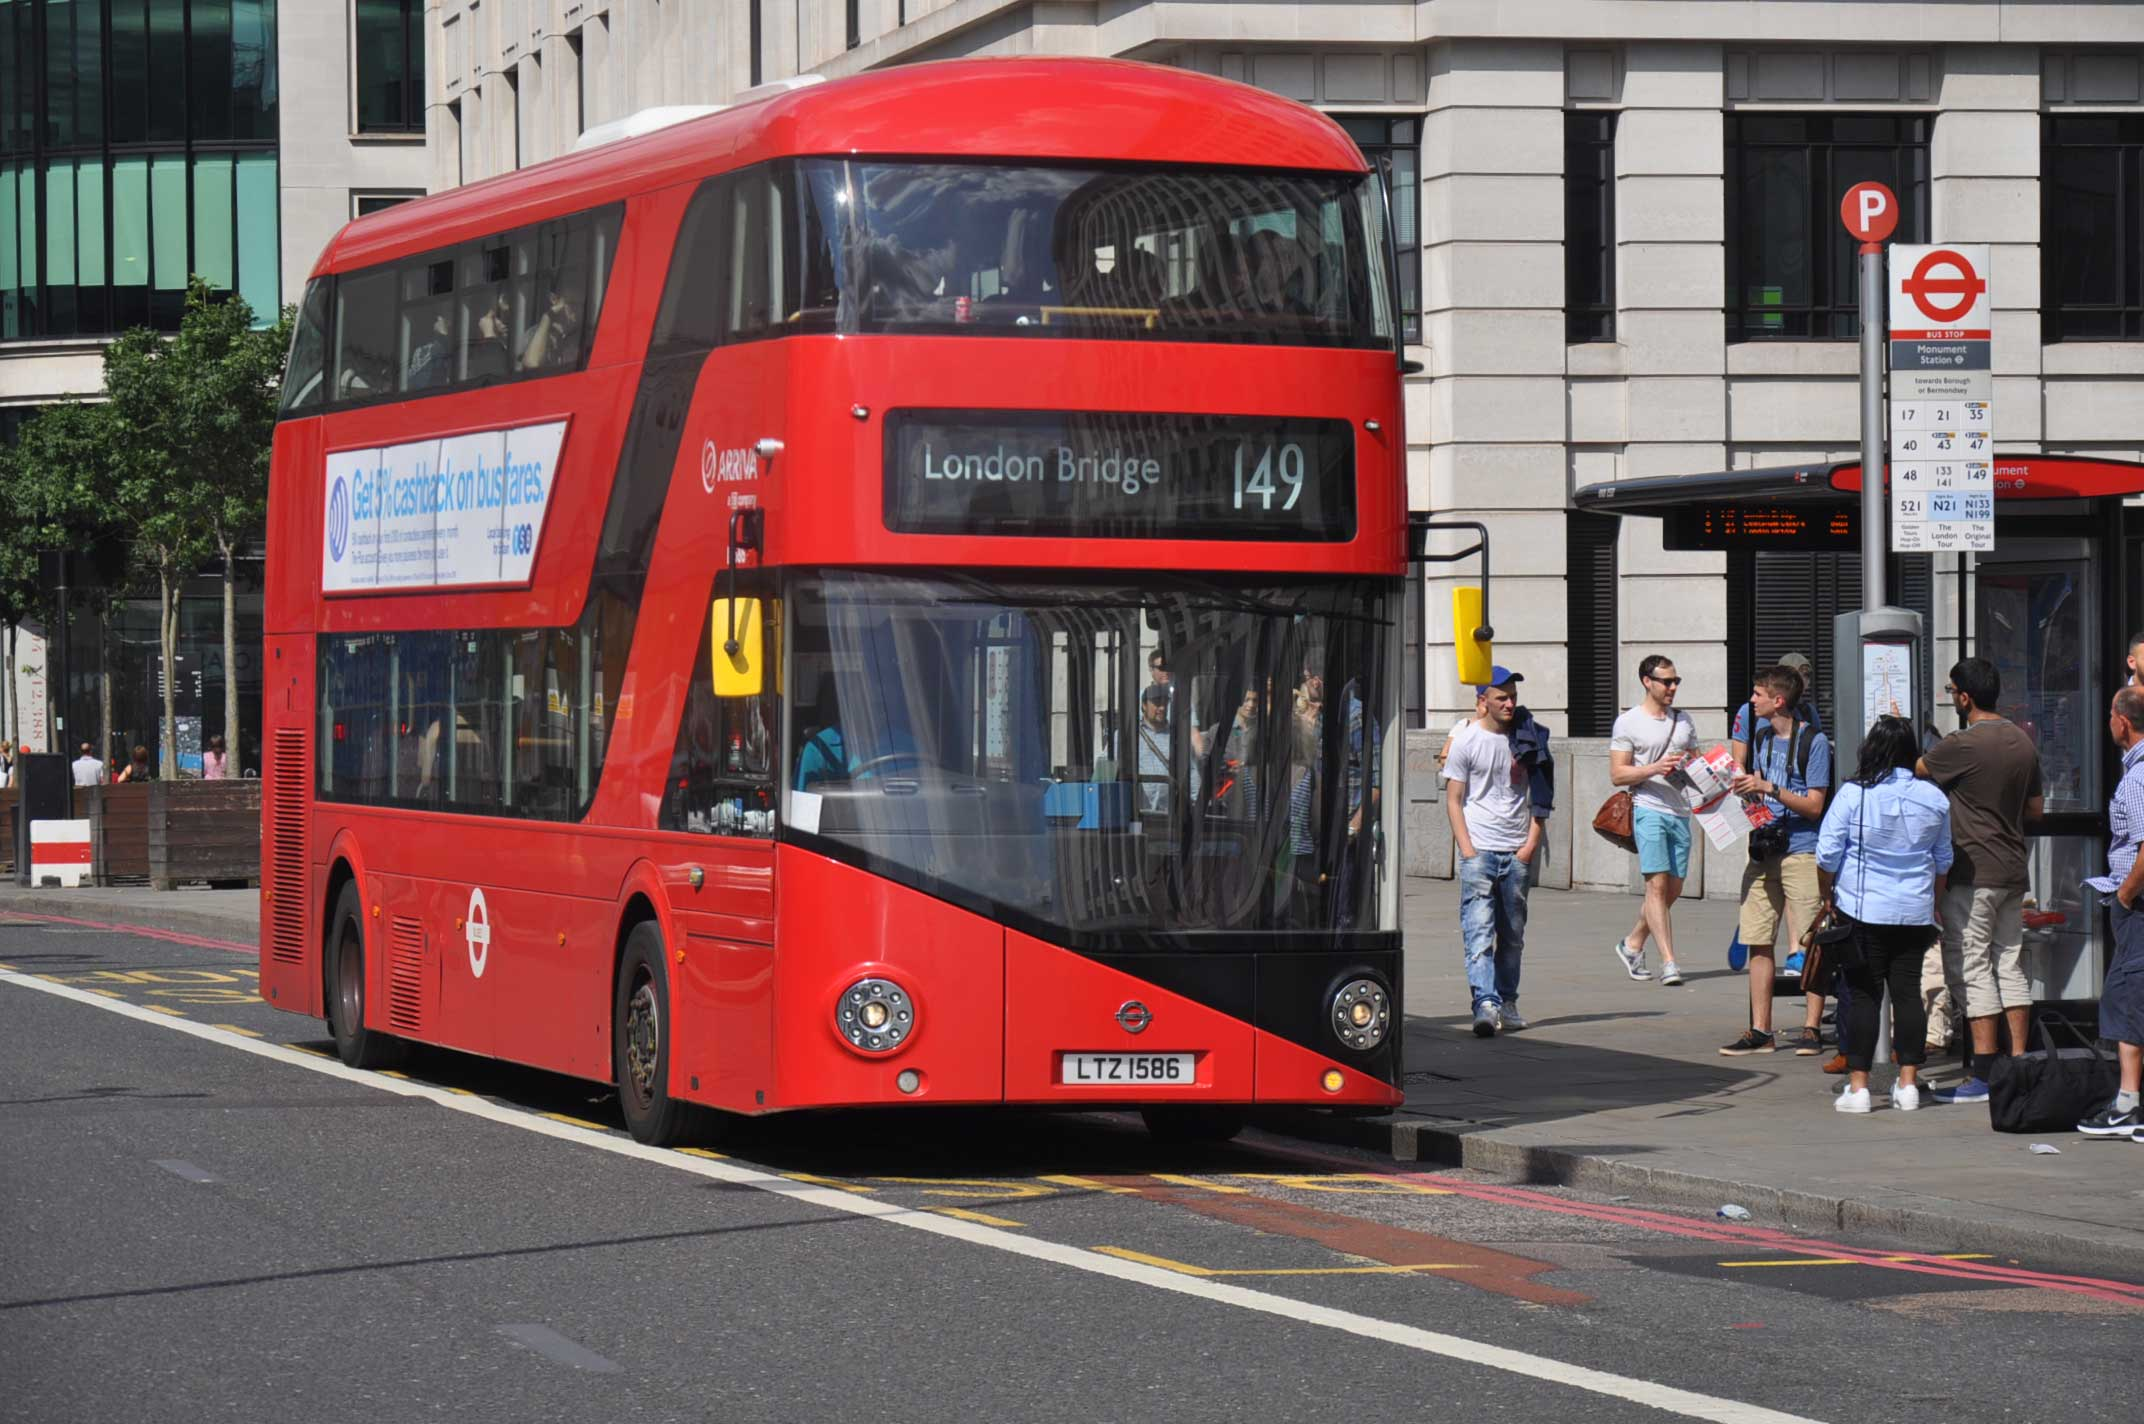 london buses route 149 | bus routes in london wiki | fandom powered